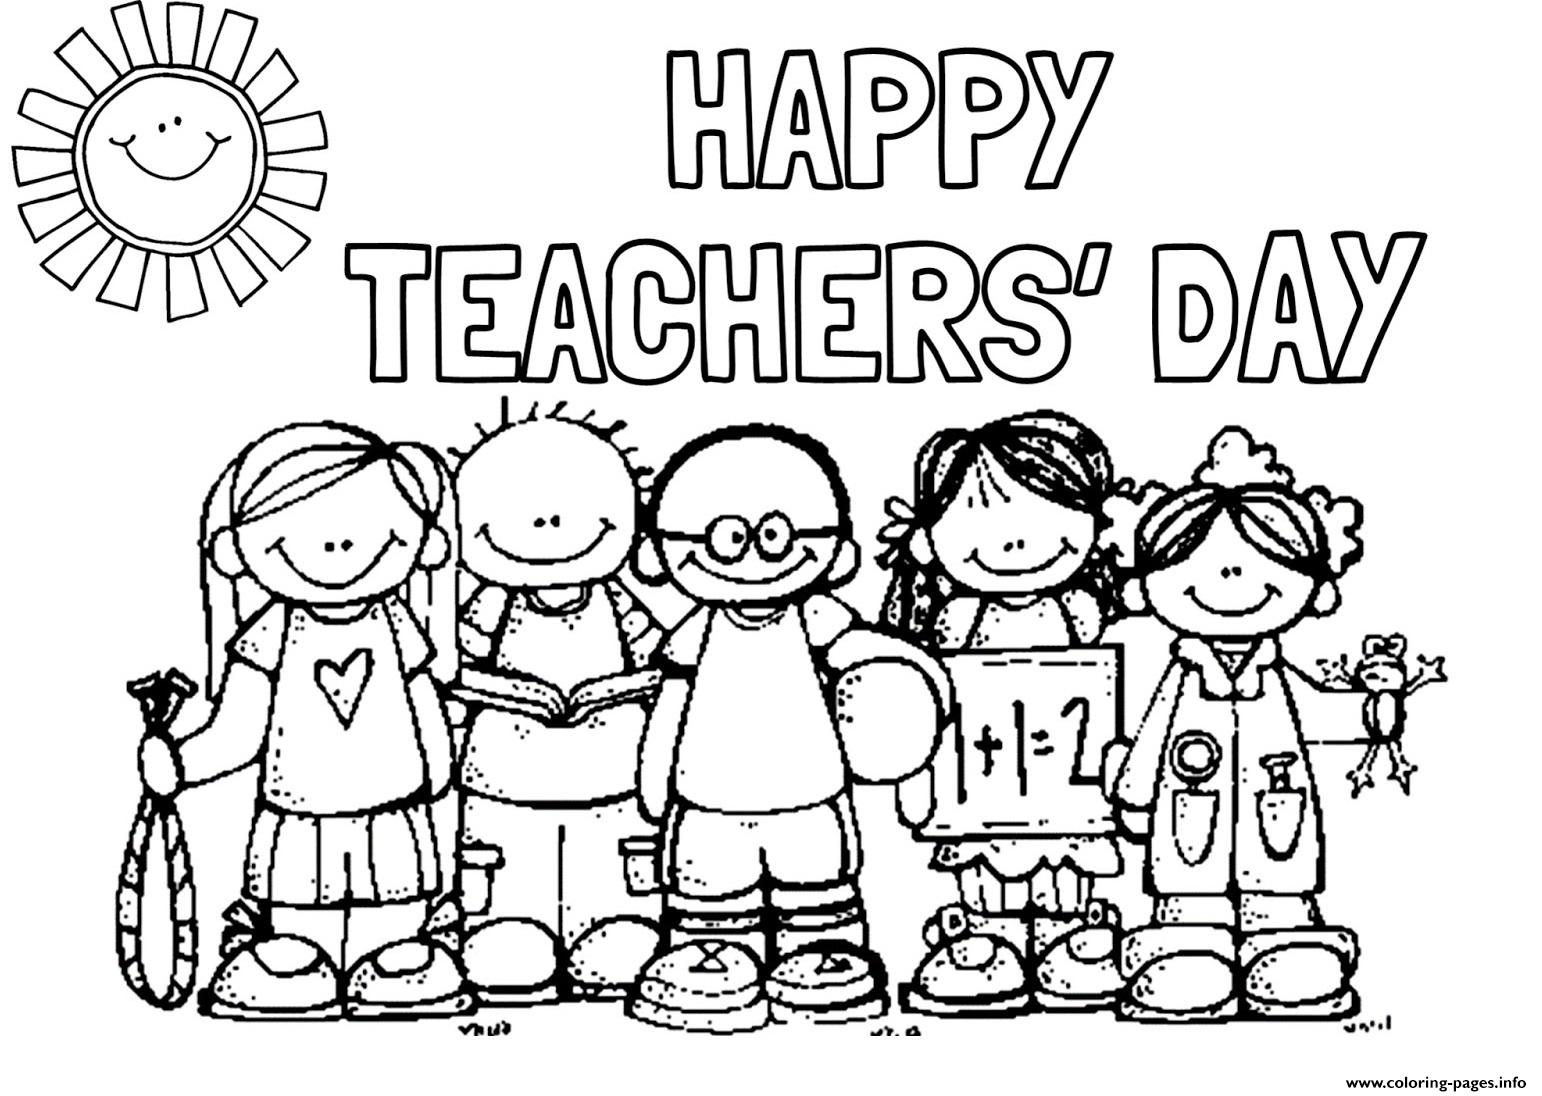 Happy Teachers Day Students Picture coloring pages